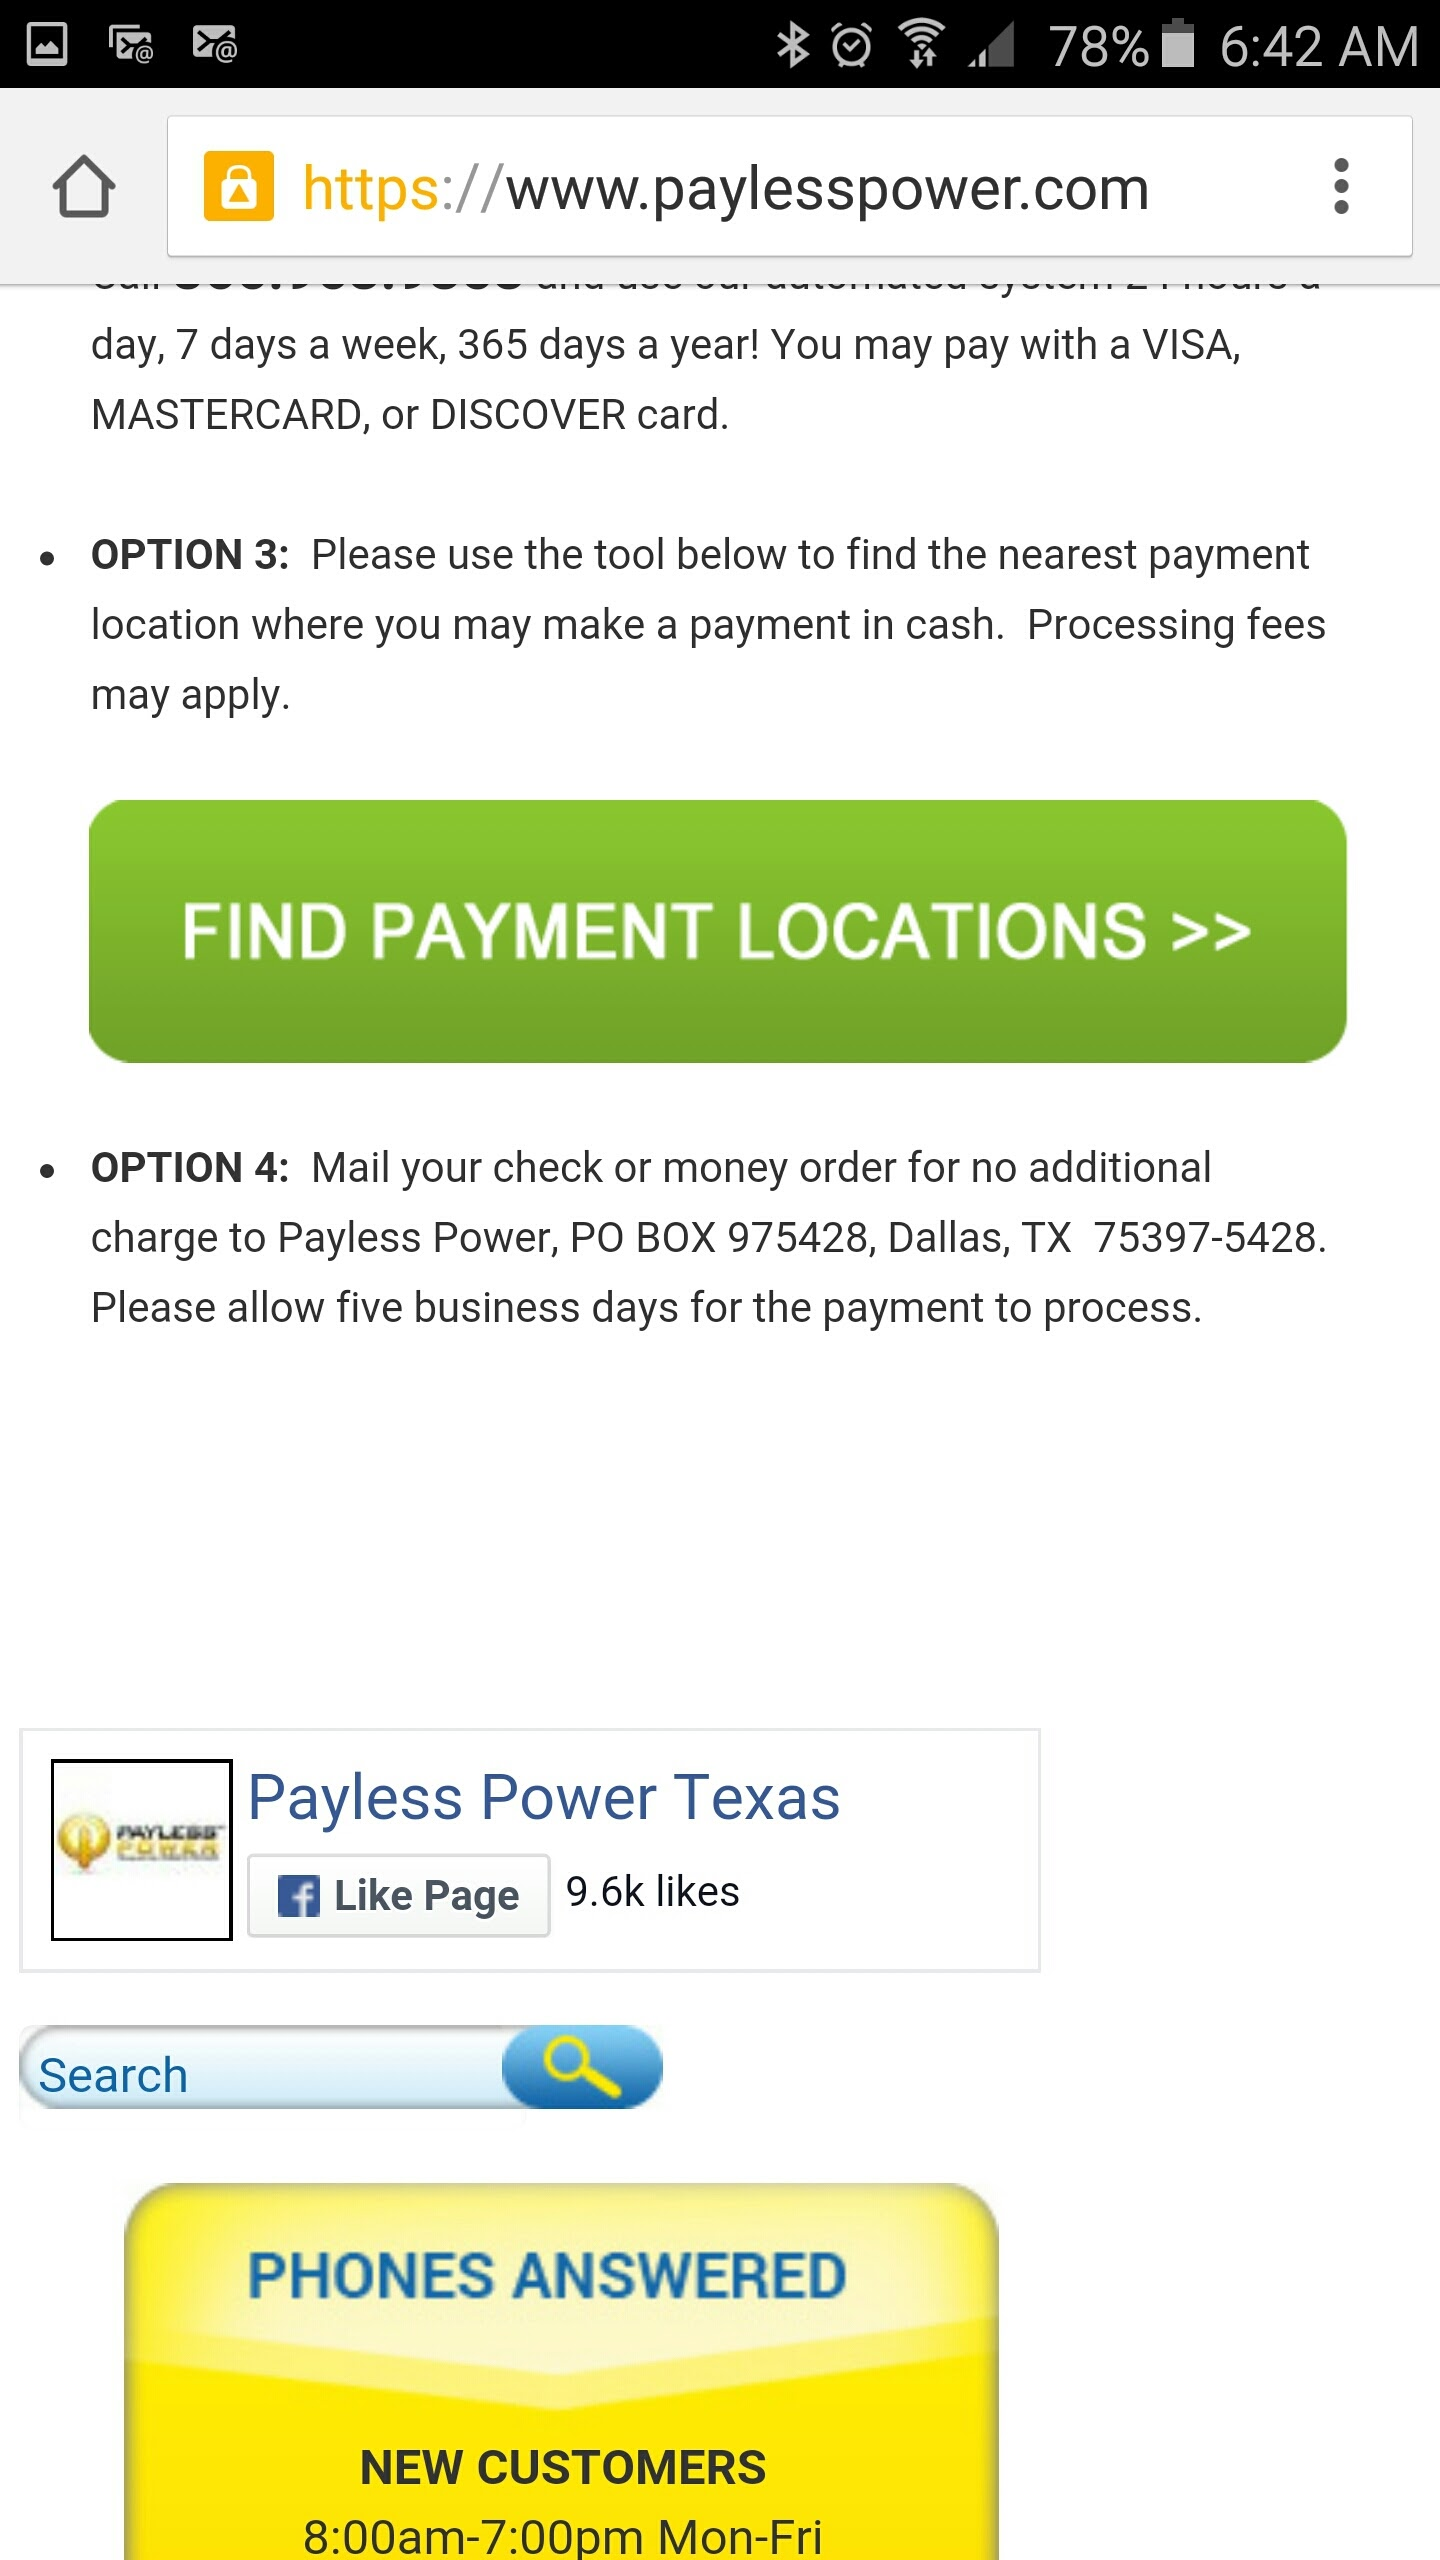 Payless Power Reviews >> Payless Power Texas Android App Download Payless Power Texas